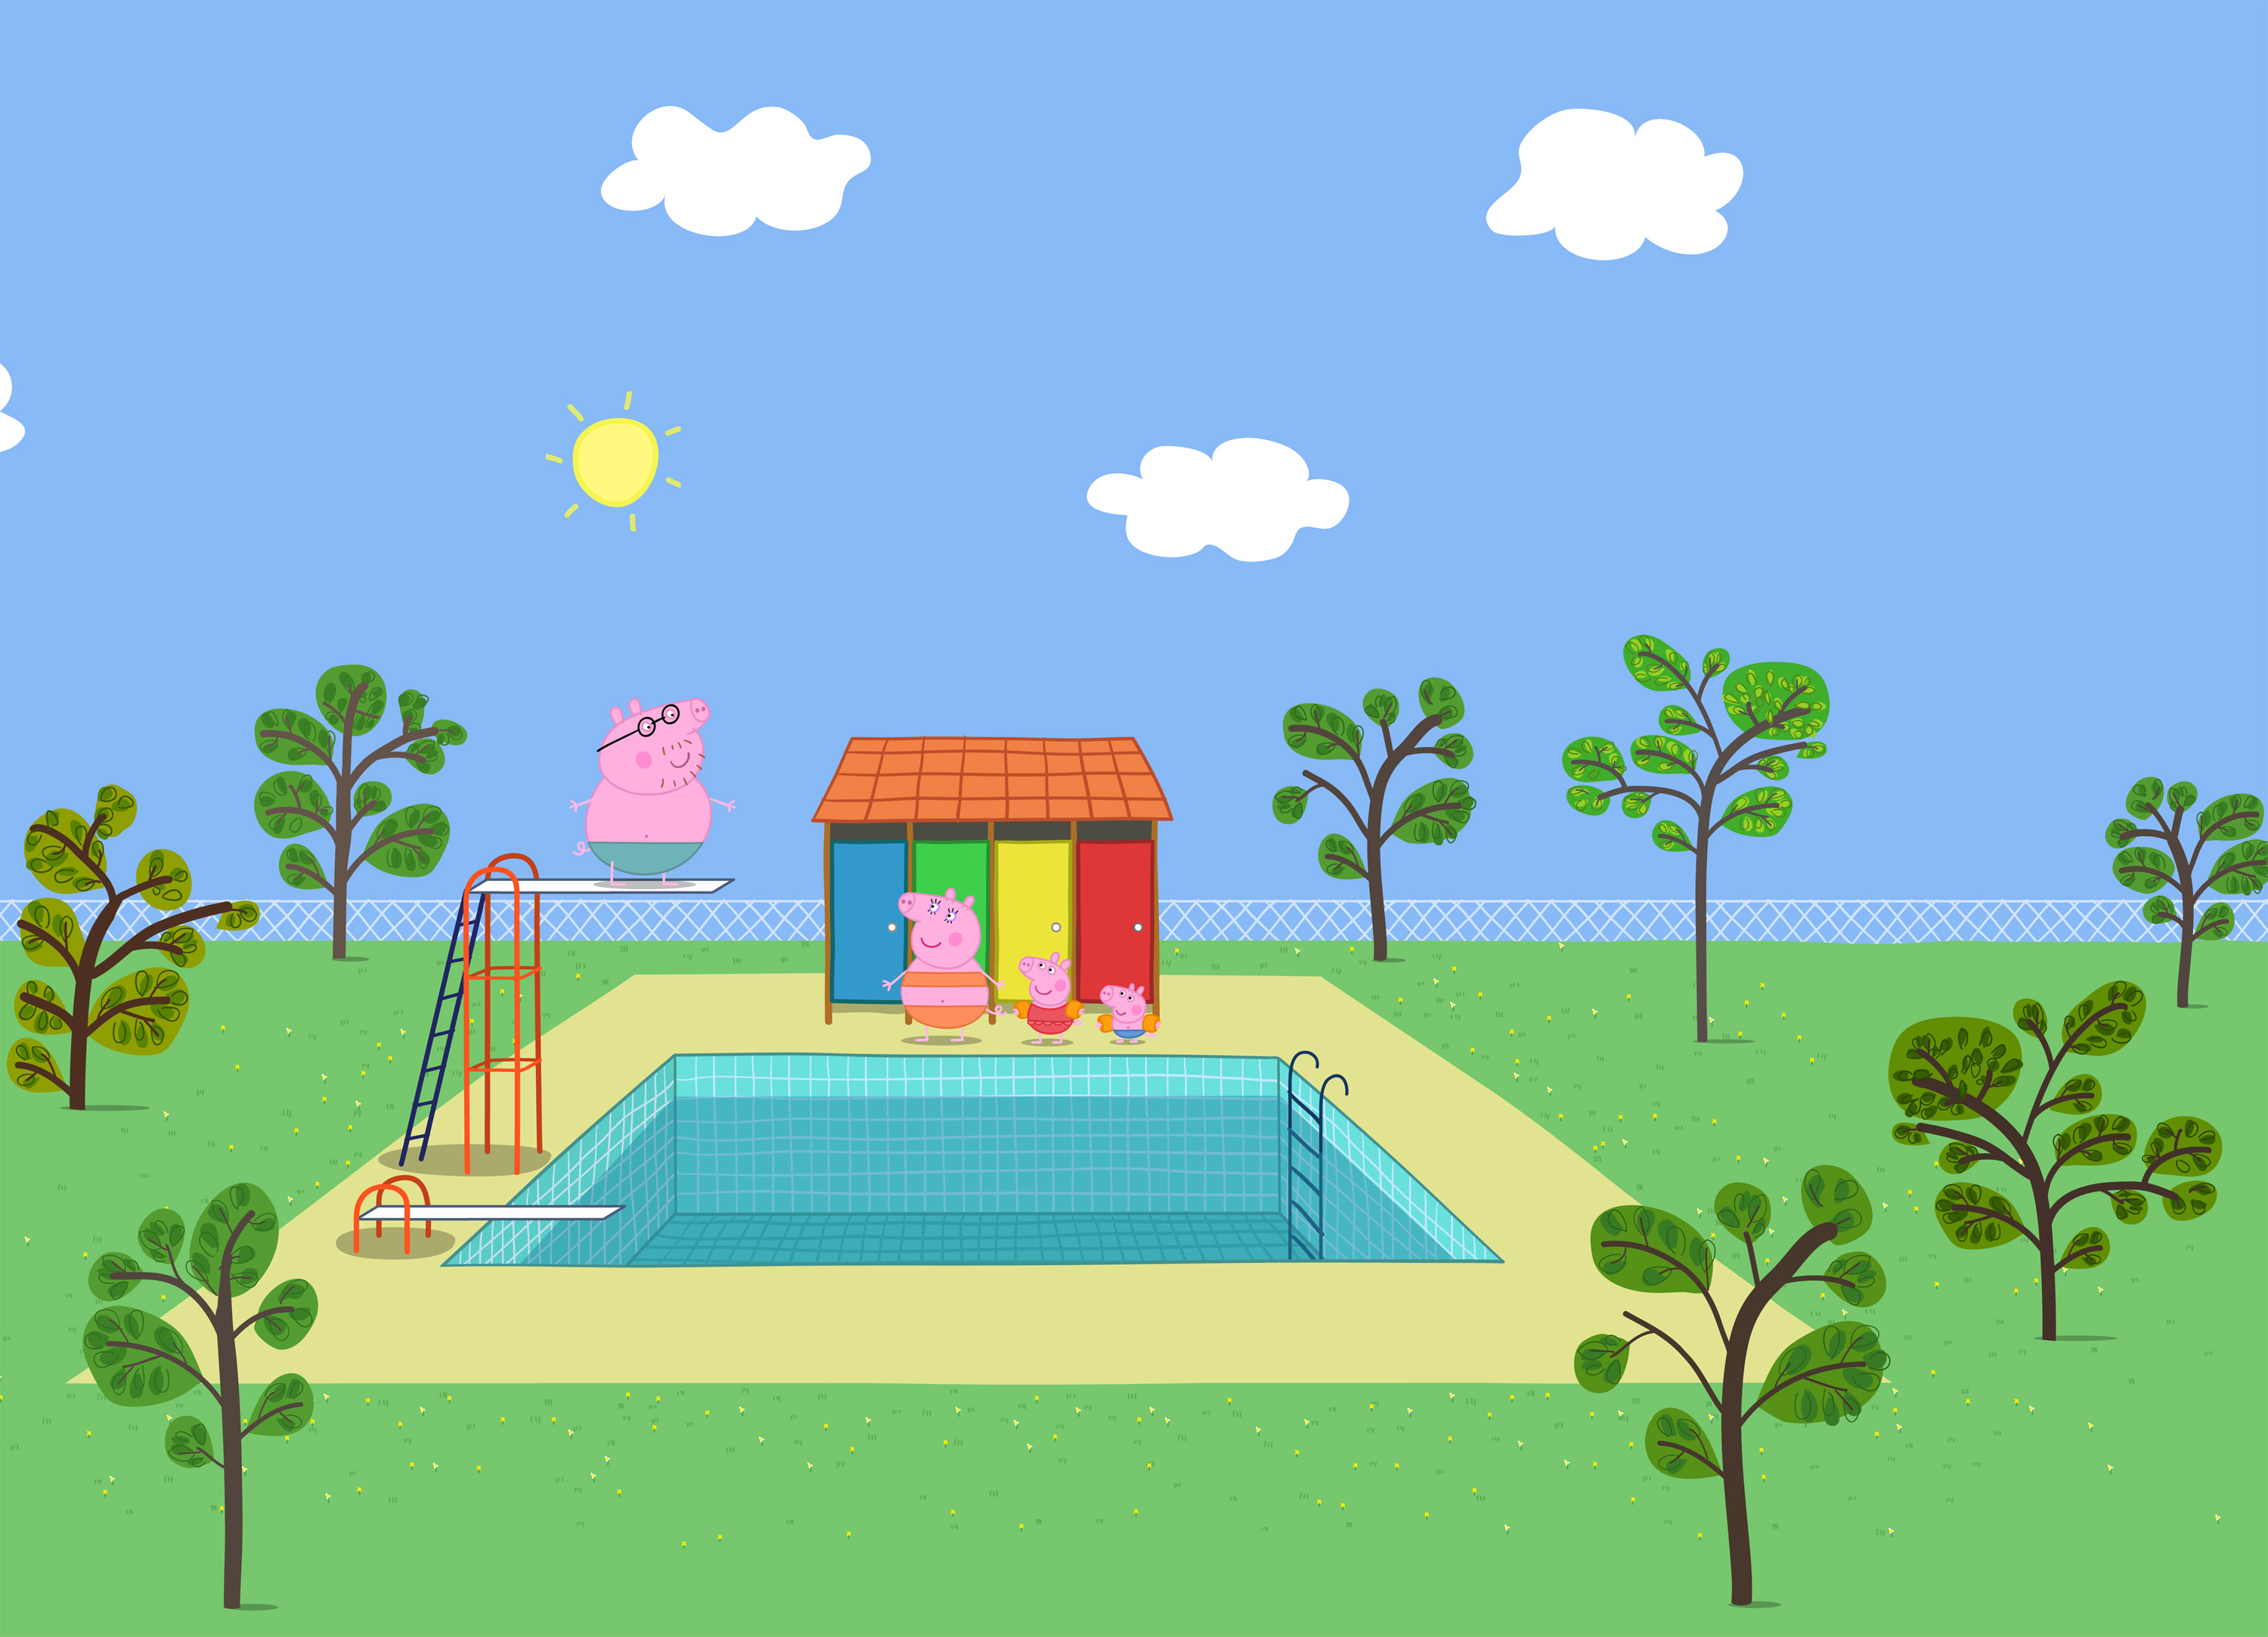 1000 Images About Peppa Pig On Pinterest Peppa Pig Pigs And Cards